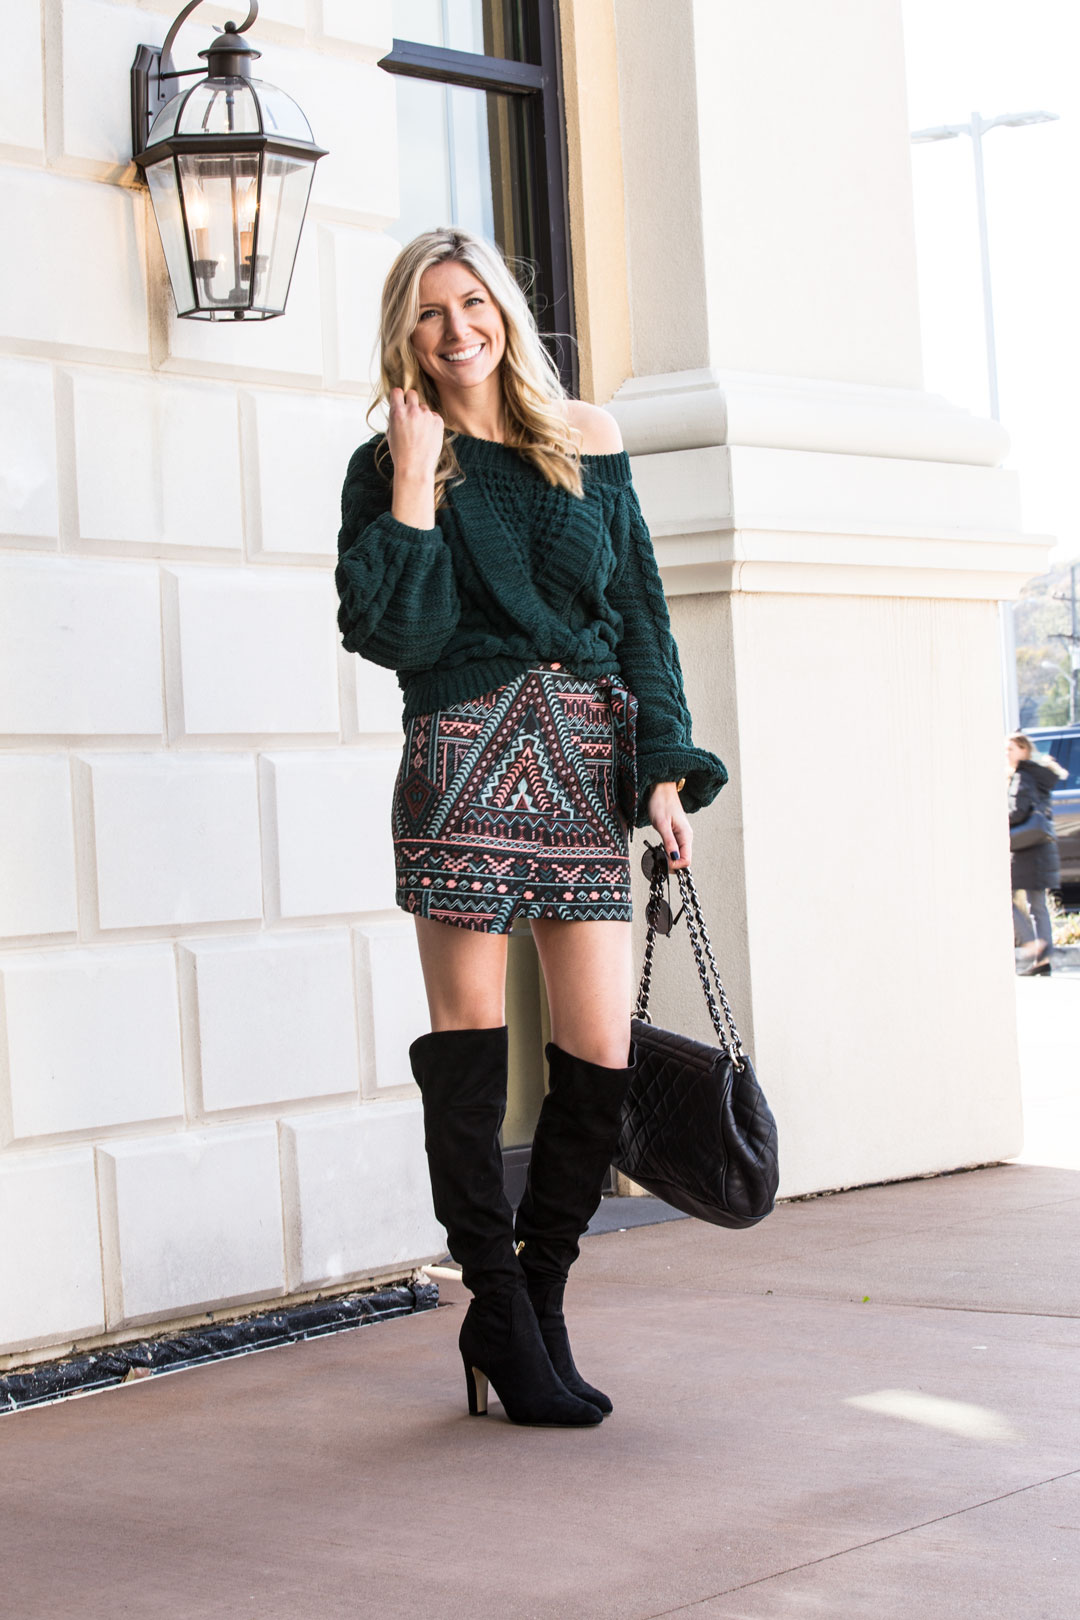 Express Jacquard Skirt and Cableknit Sweater